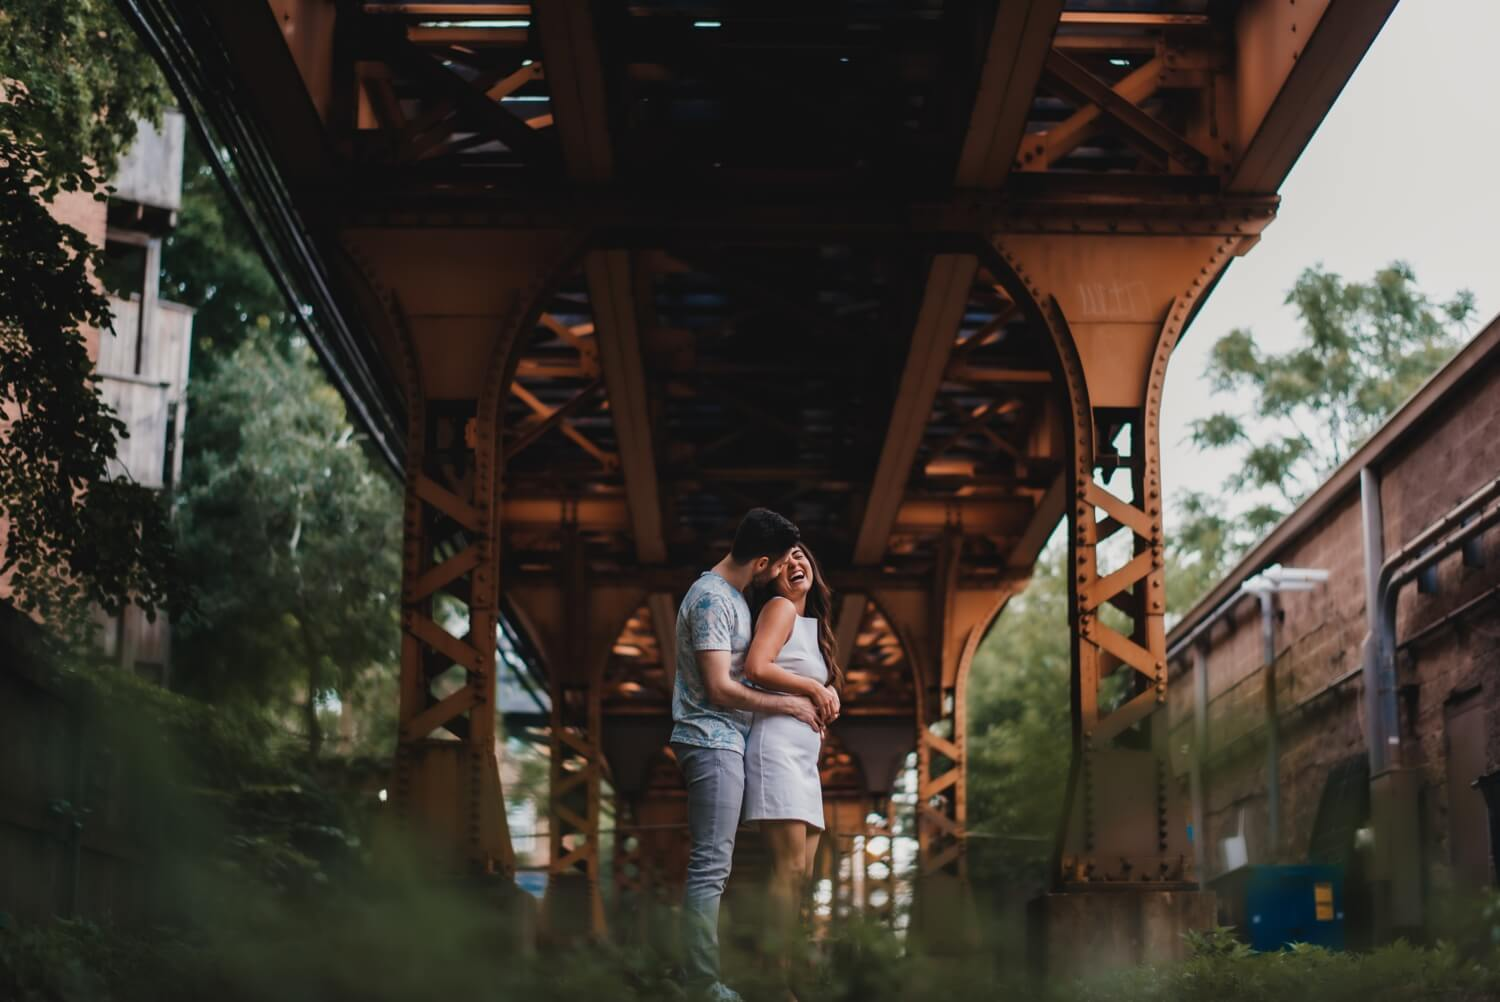 Wicker Park Engagement Photographer - The Adamkovi, under the L train tracks